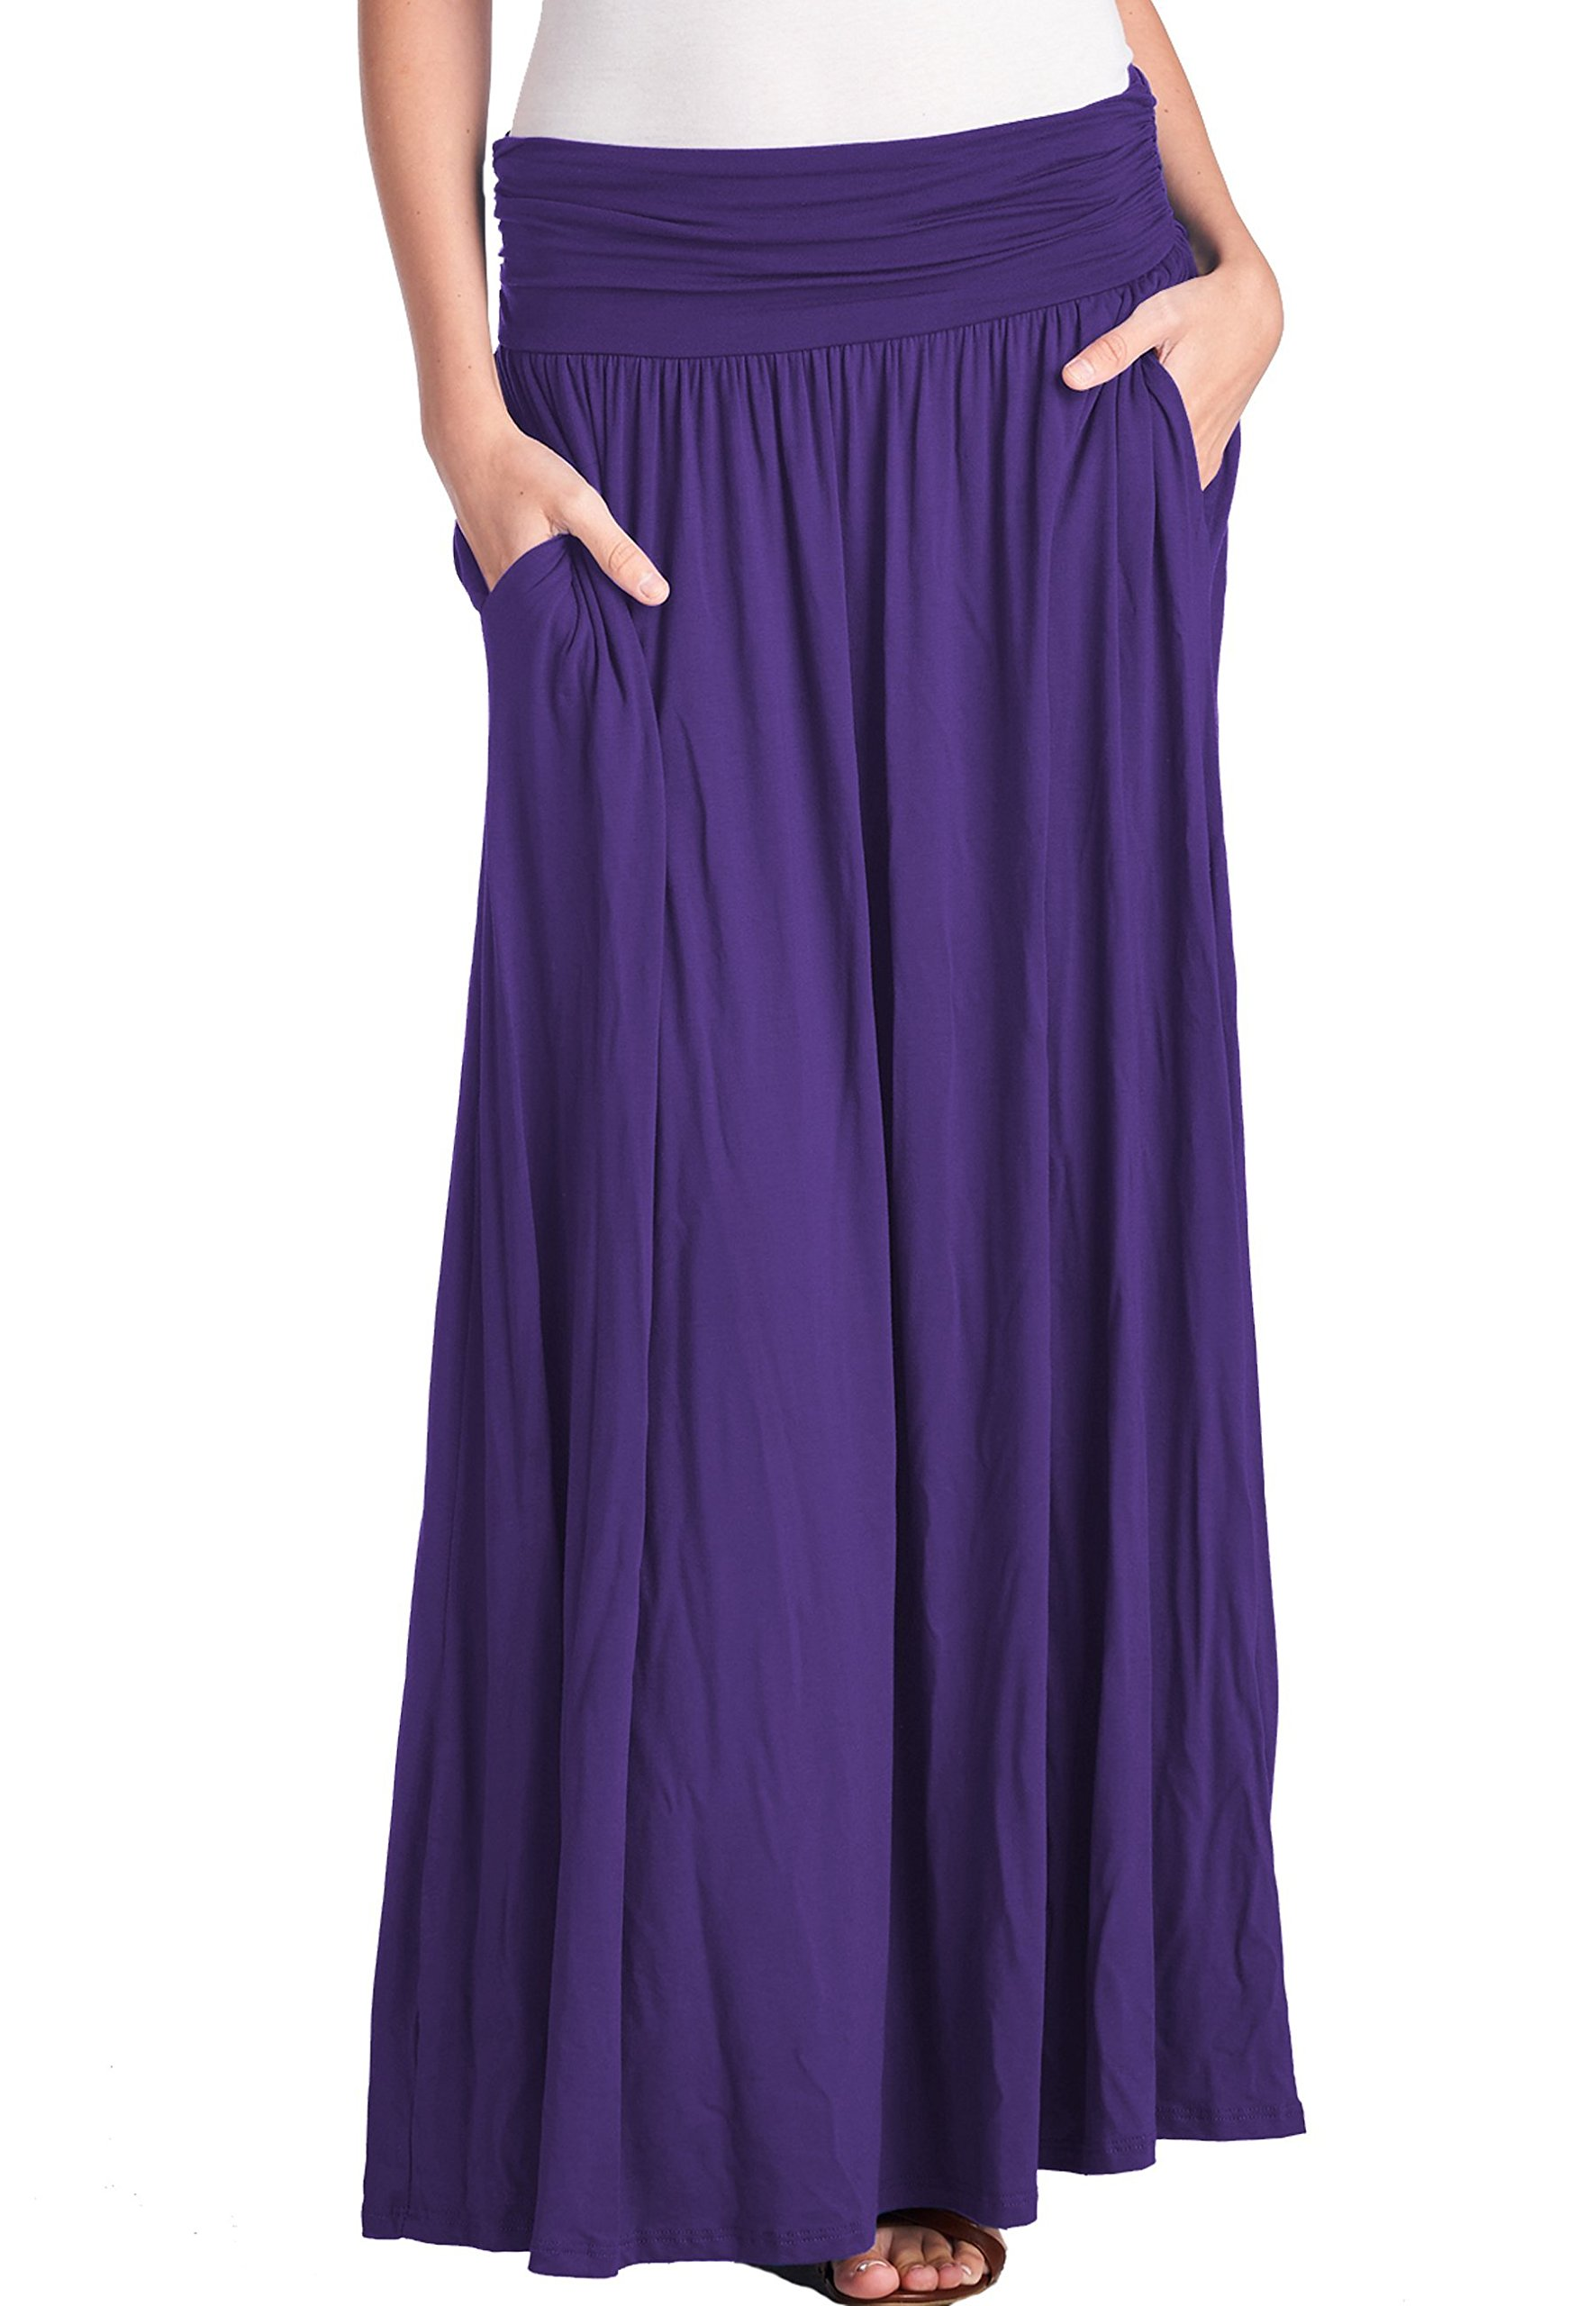 TRENDY UNITED Women's High Waist Fold Over Shirring Maxi Skirt with Pockets ,Eggplant-maxi,Small